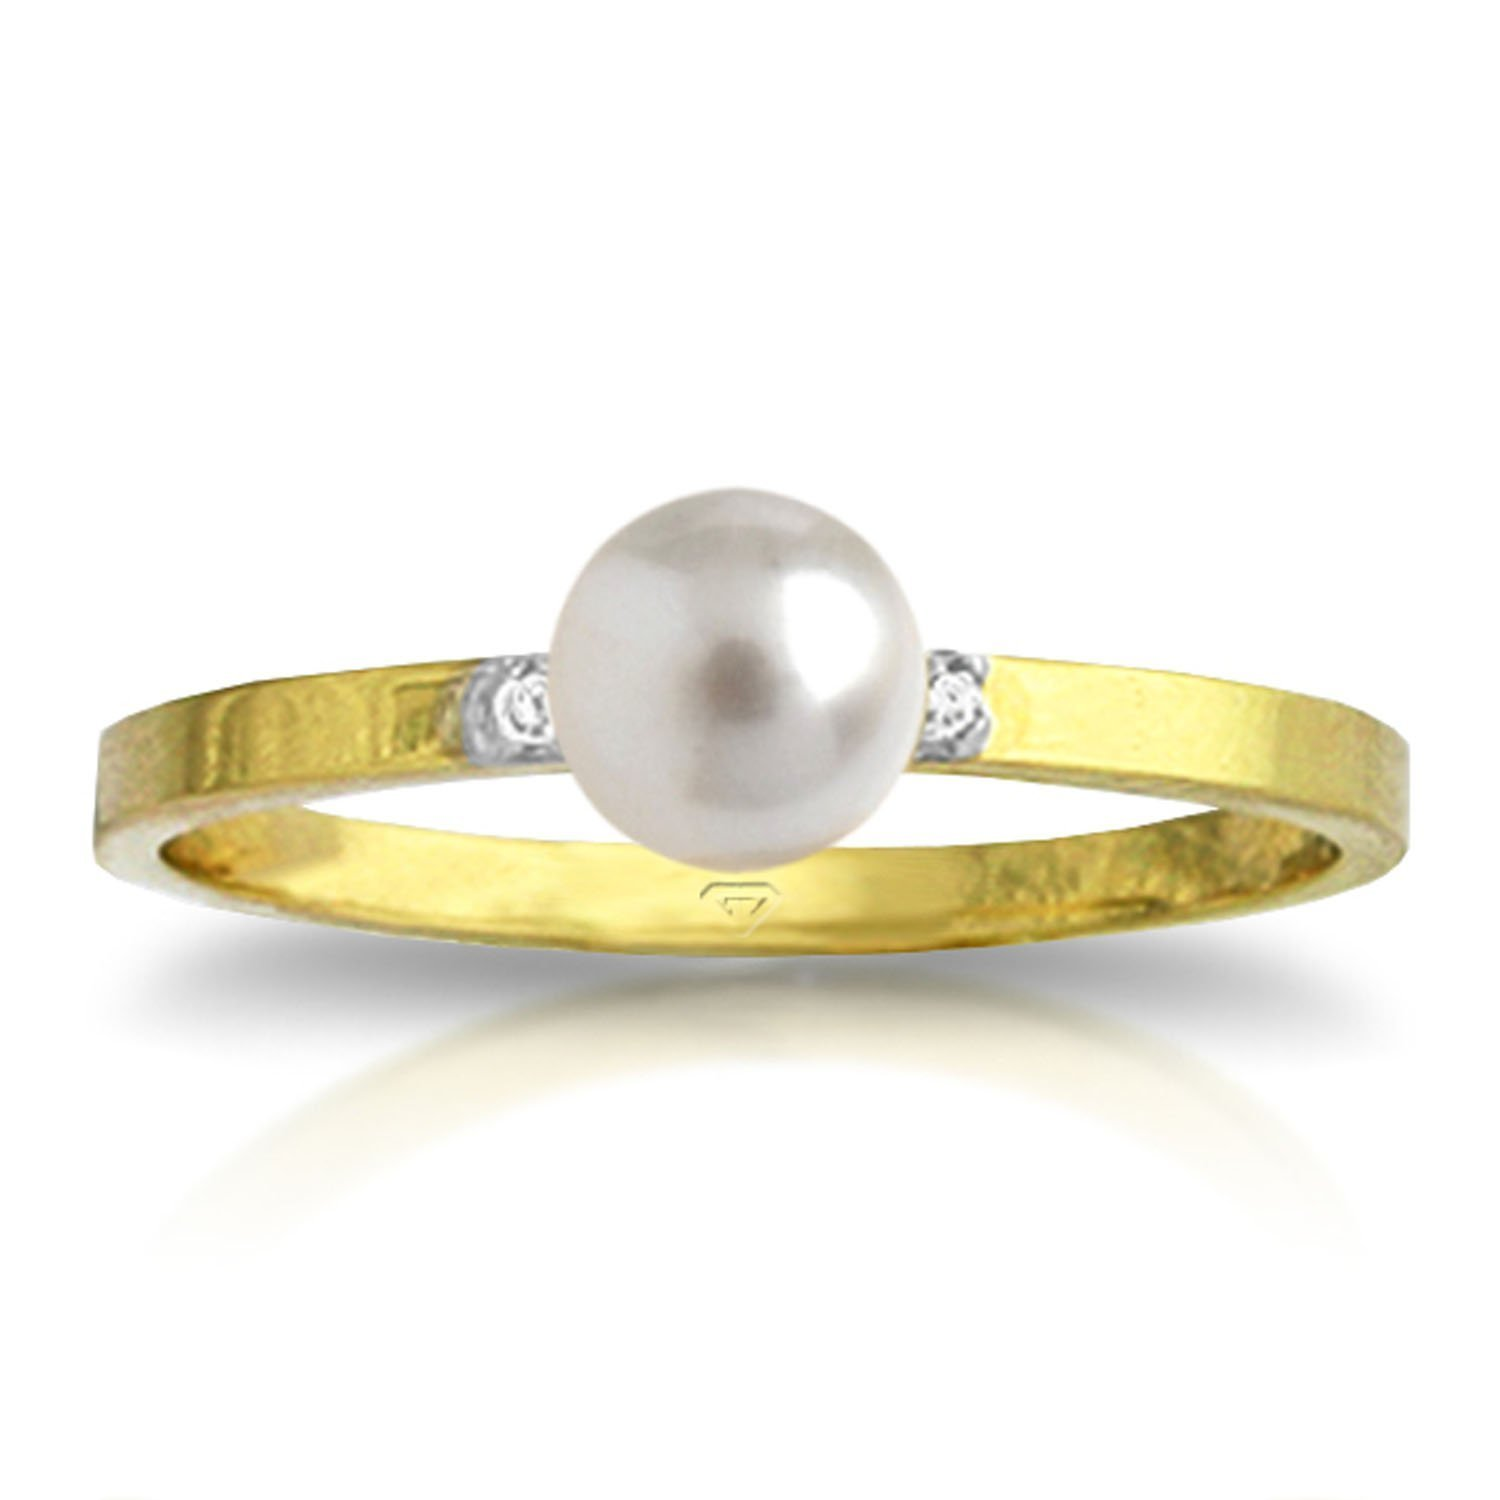 1.02 Carat 14k Solid Gold Ring with Natural Diamonds and Freshwater-cultured Pearl - Size 7.5